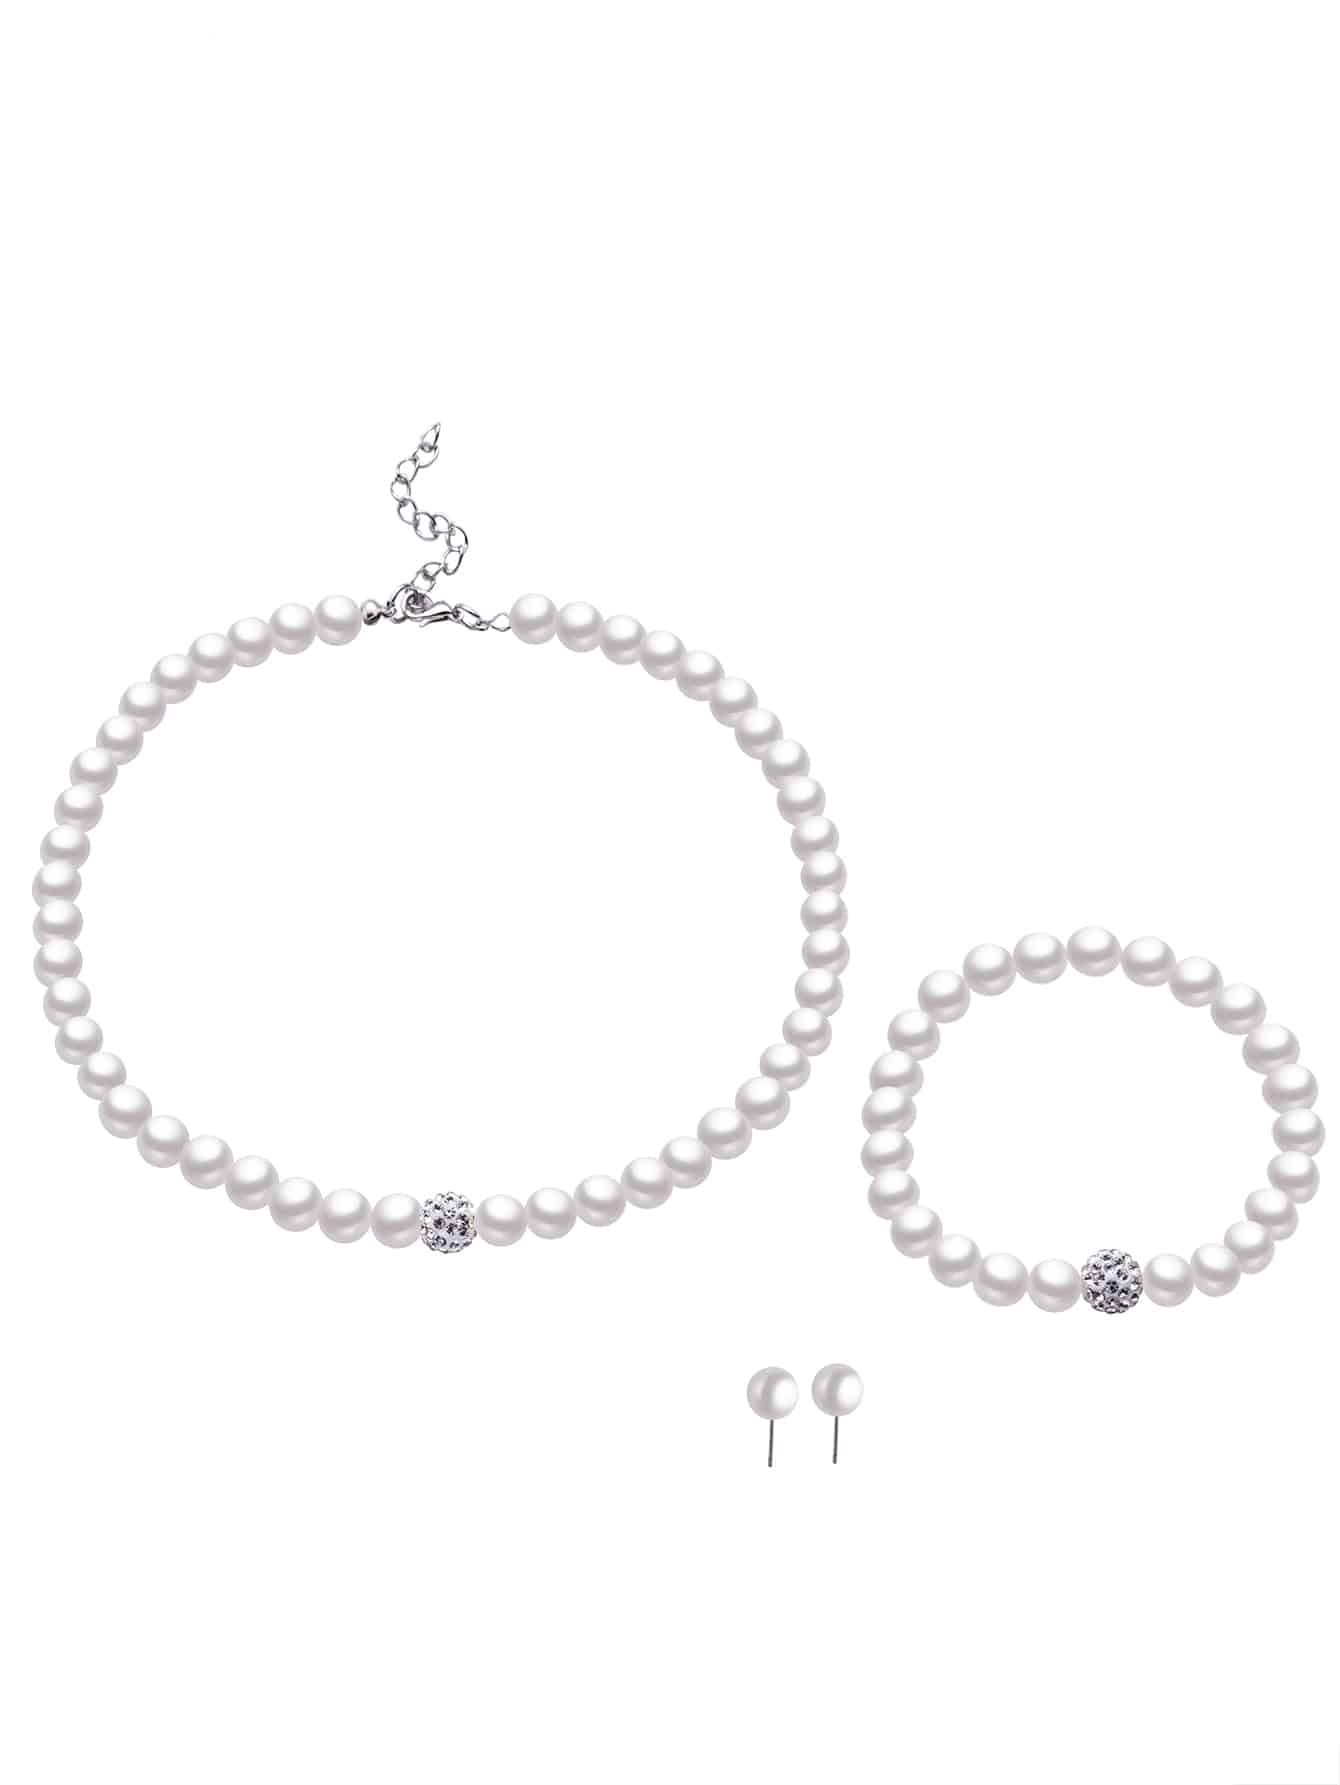 White Faux Pearl Beaded Rhinestone Elegant Jewelry SetWhite Faux Pearl Beaded Rhinestone Elegant Jewelry Set<br><br>color: None<br>size: None